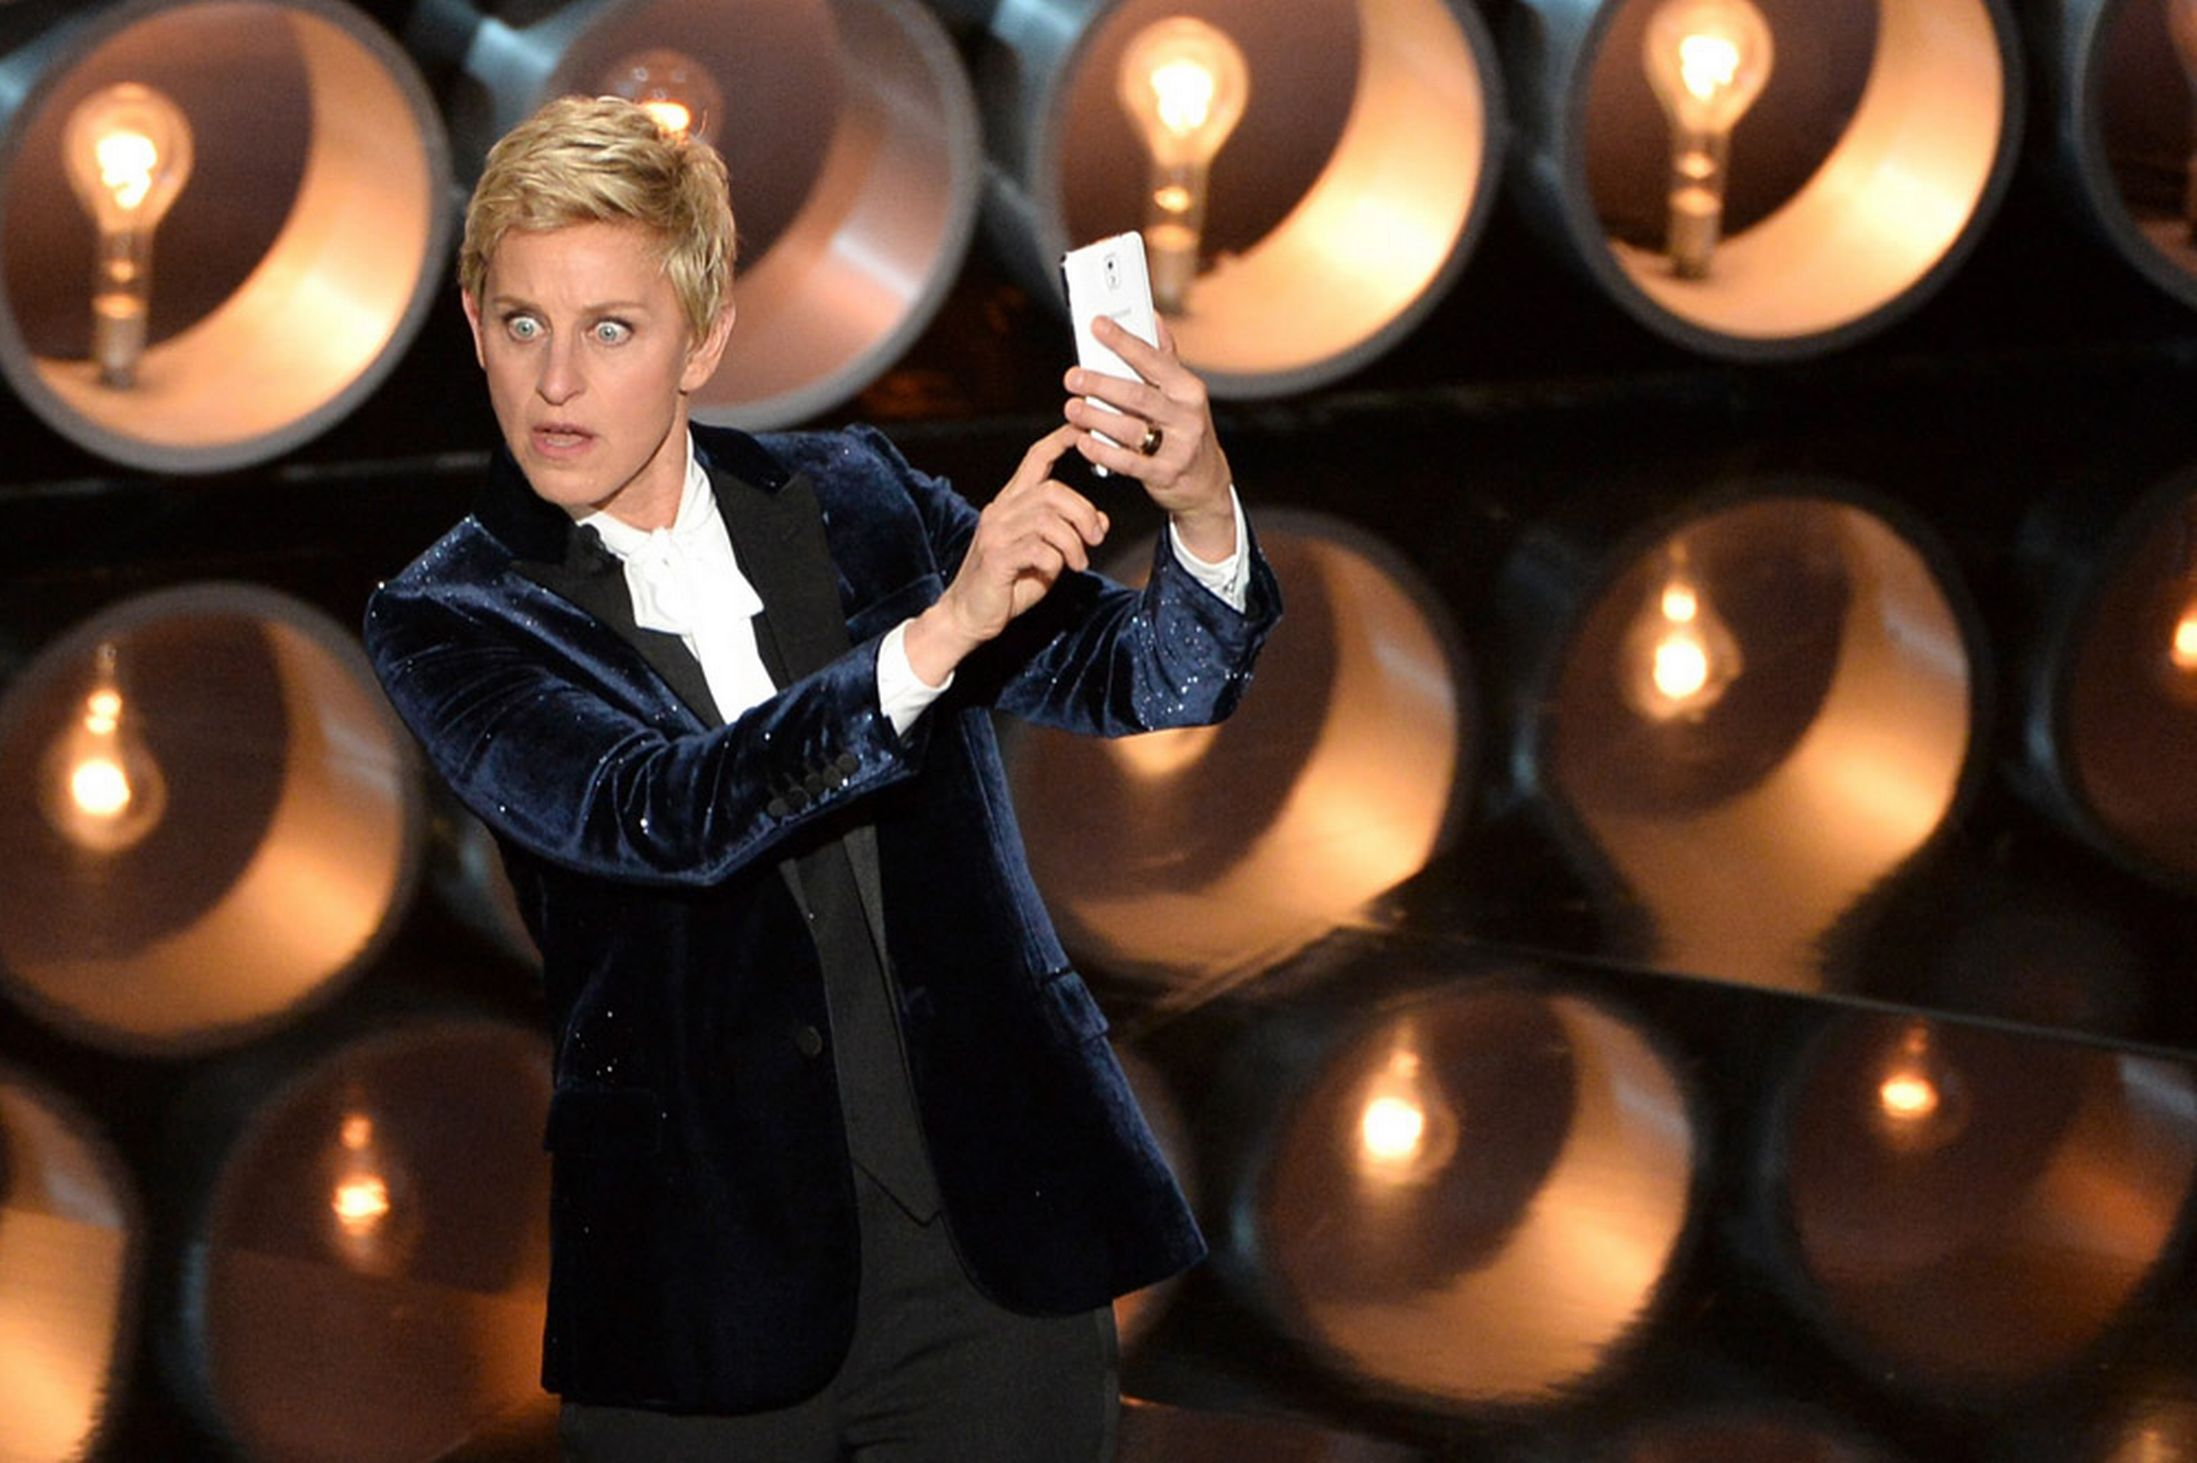 Ellen-DeGeneres-speaks-onstage-during-the-Oscars_getty